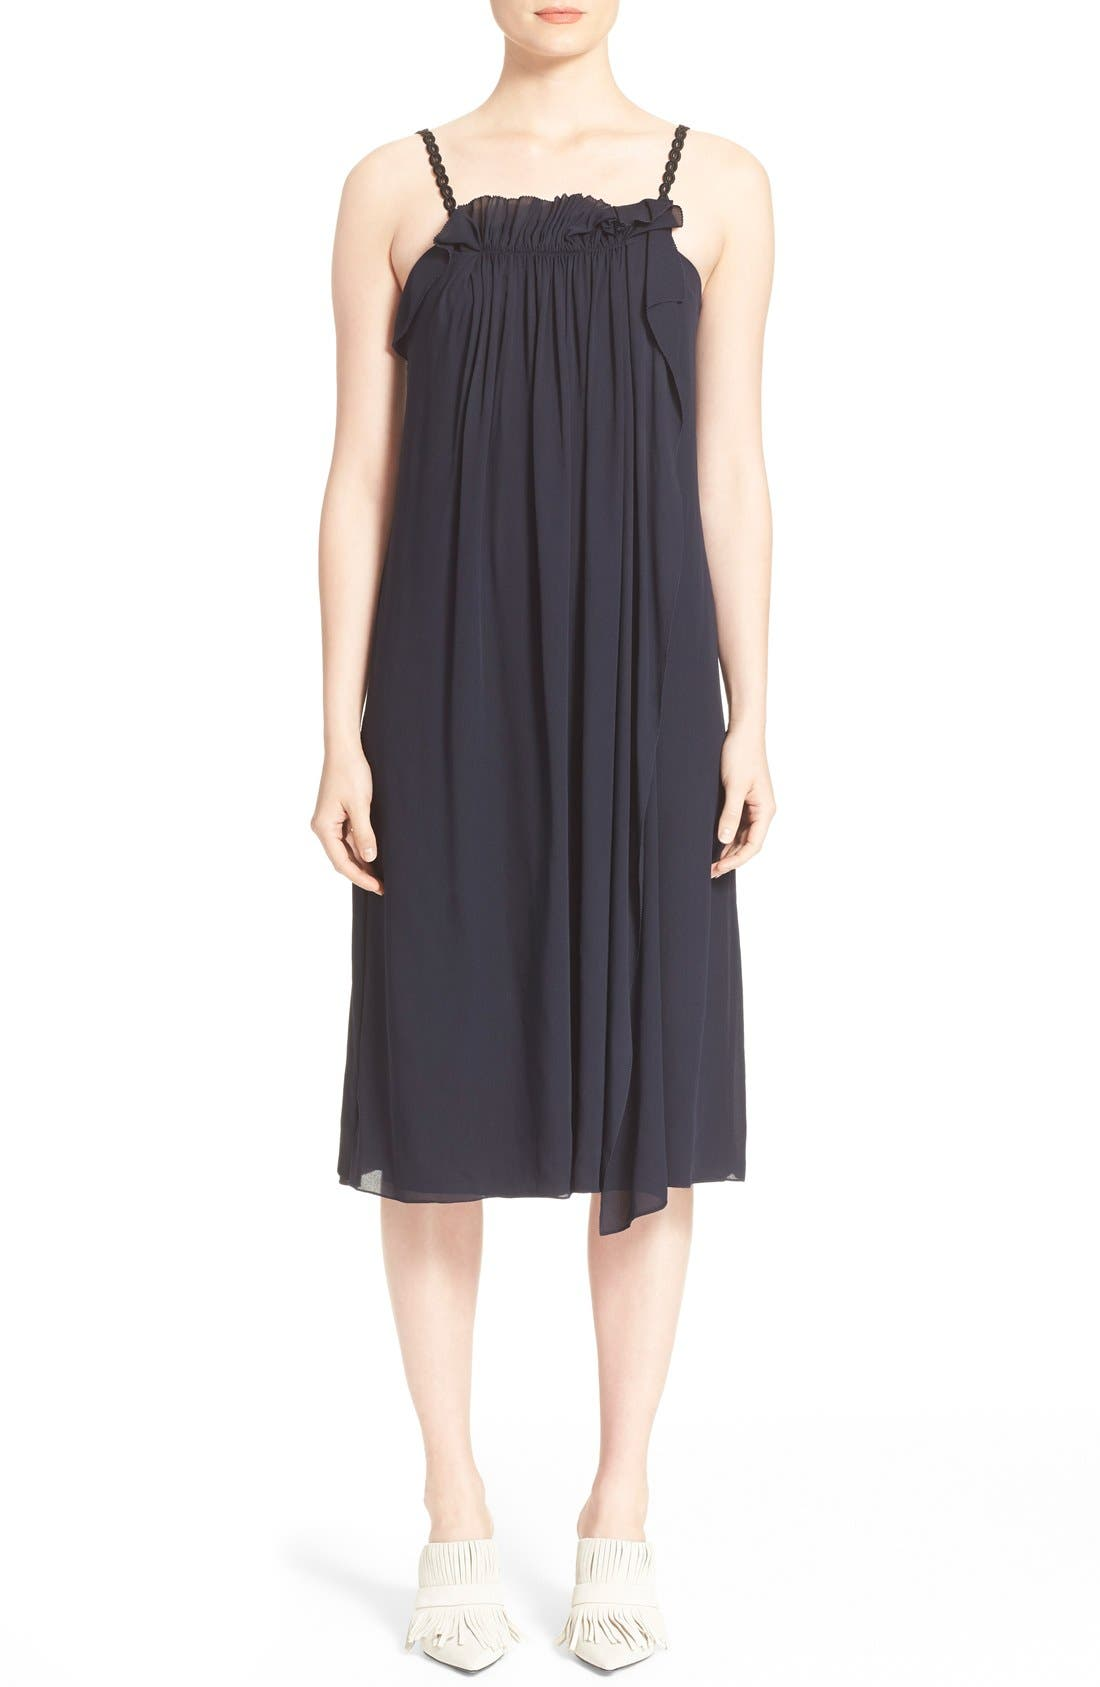 Alternate Image 1 Selected - 3.1 Phillip Lim Passementerie Strap Silk Dress